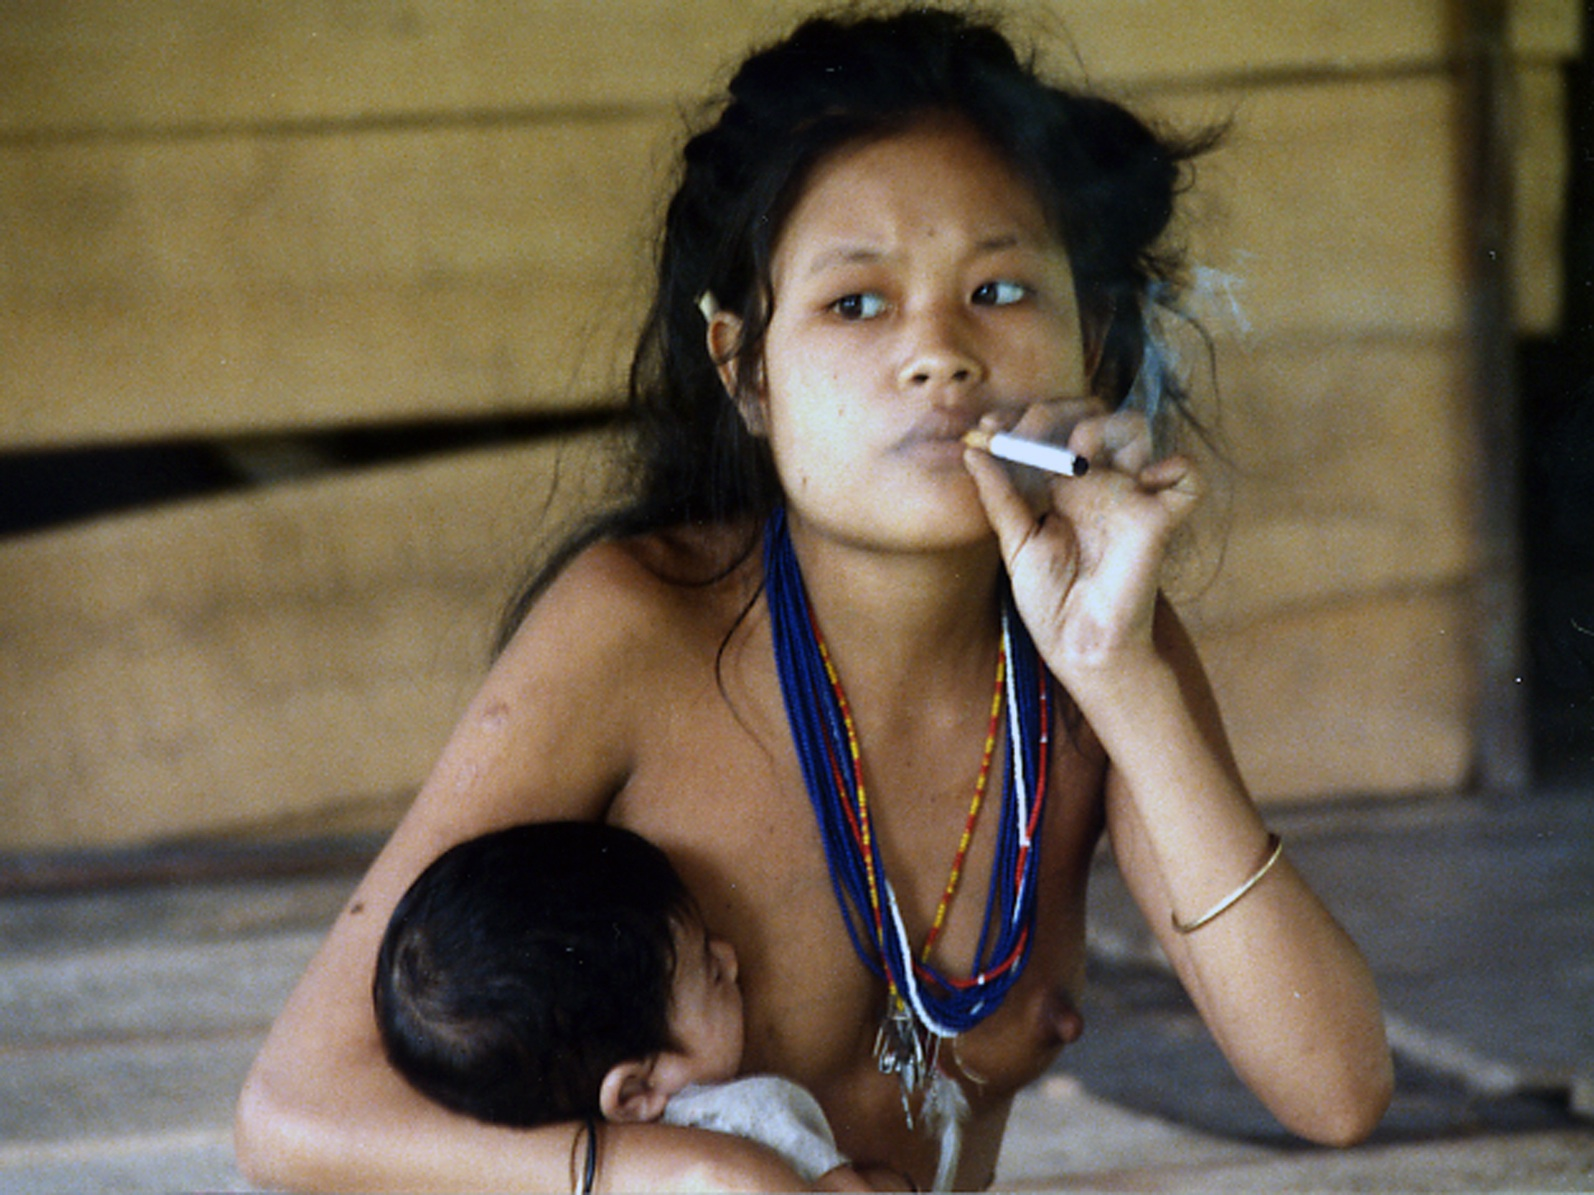 Smoking and breast feeds her baby